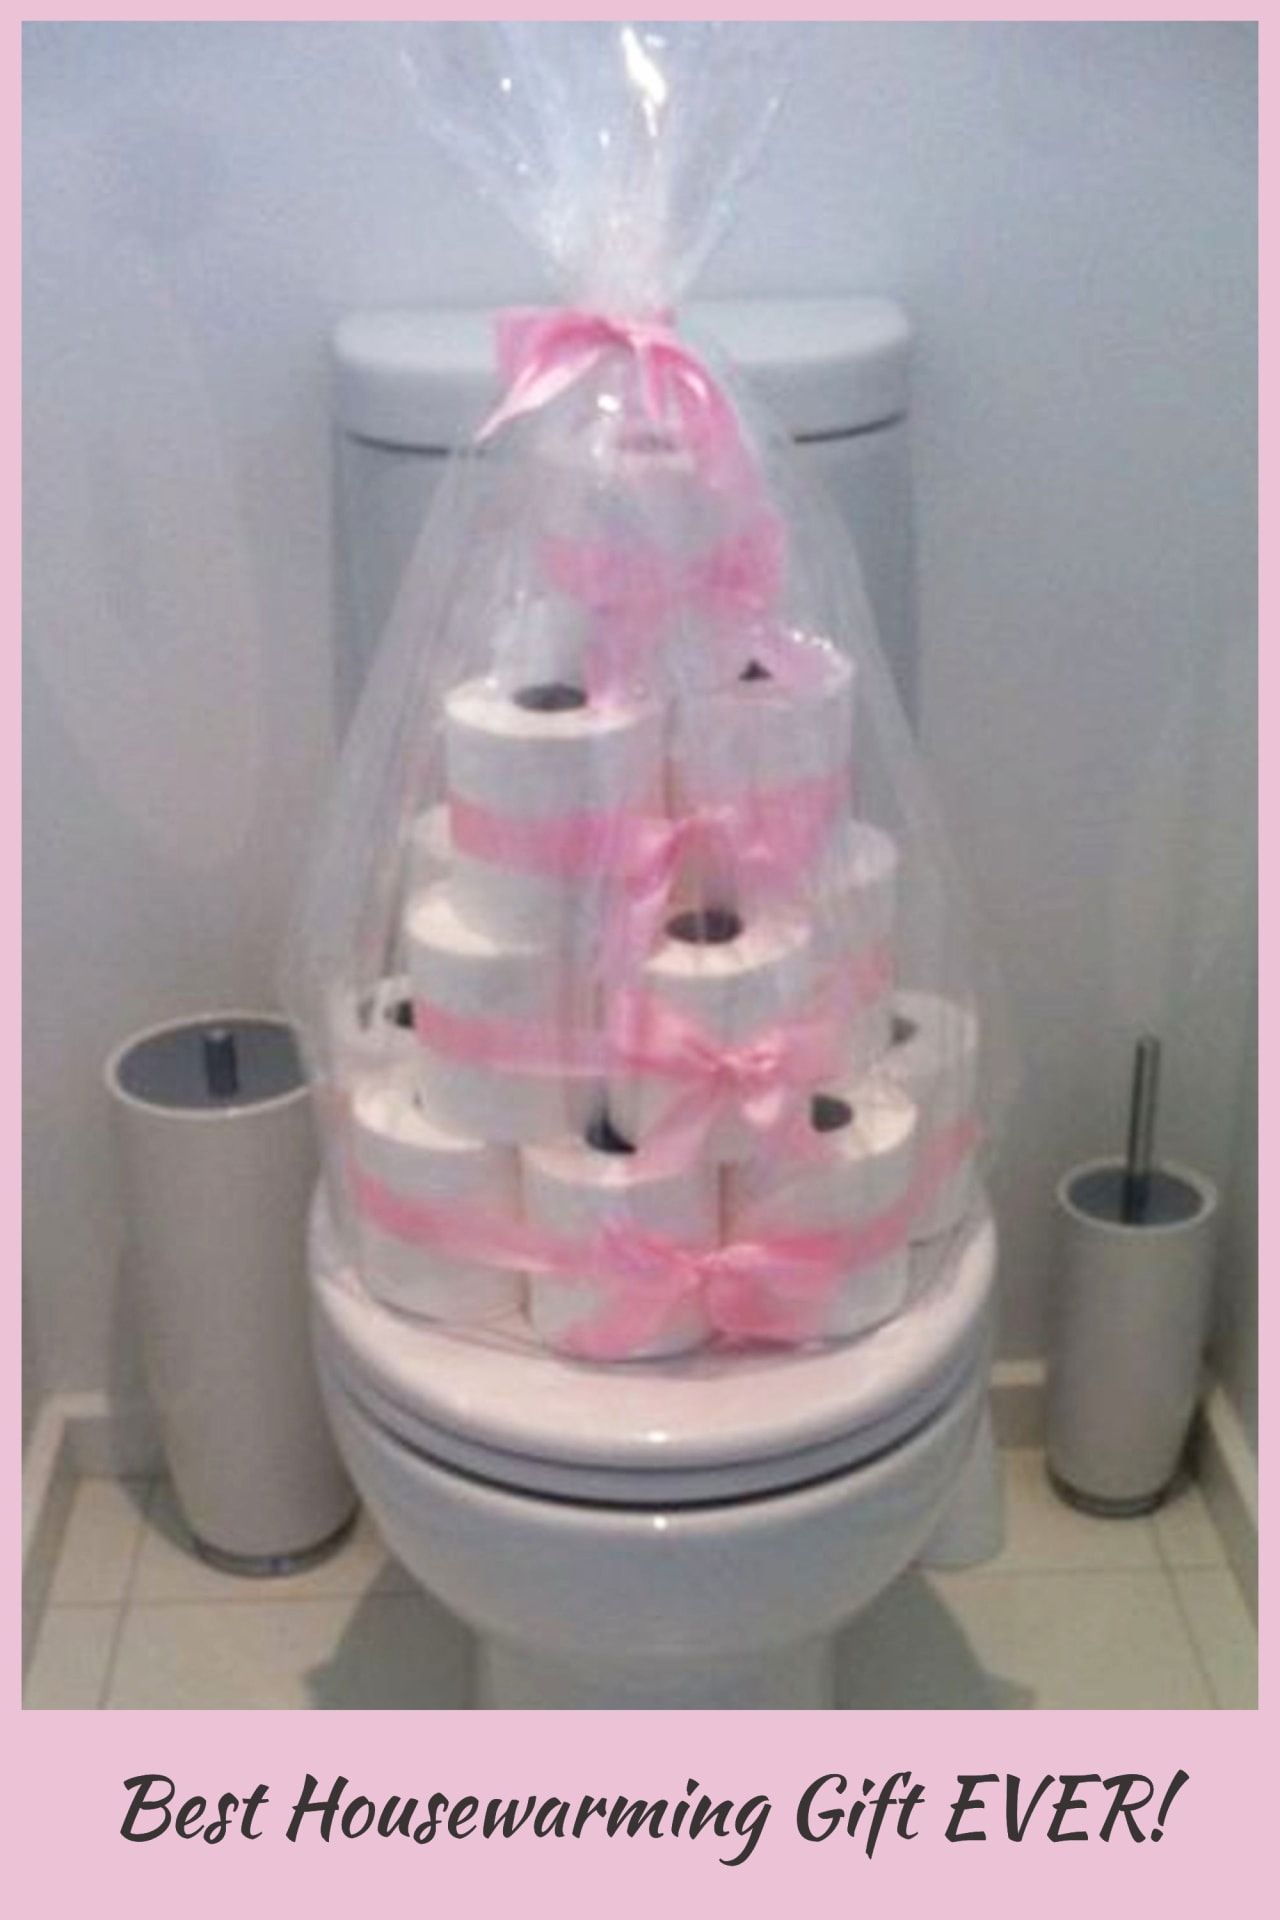 Best housewarming gift EVER!  Such practical and useful housewarming gift ideas for first time homeowners in their very first home - toilet paper tower welcome to your new home gift basket ideas